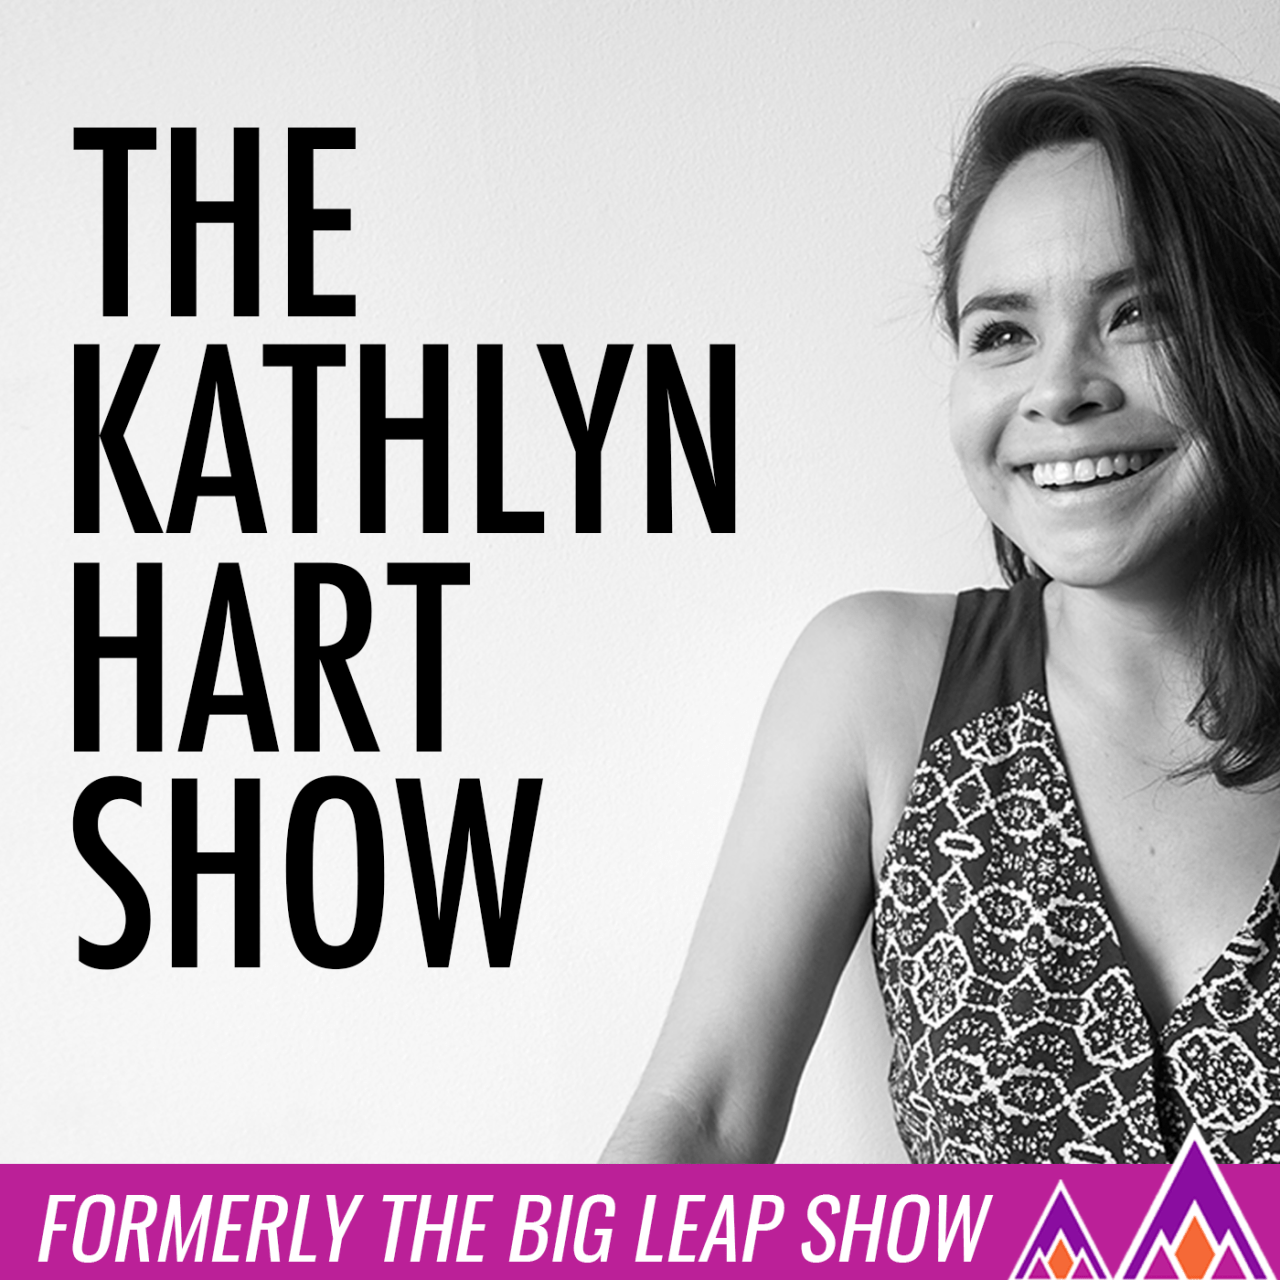 The-kathlyn-hart-show